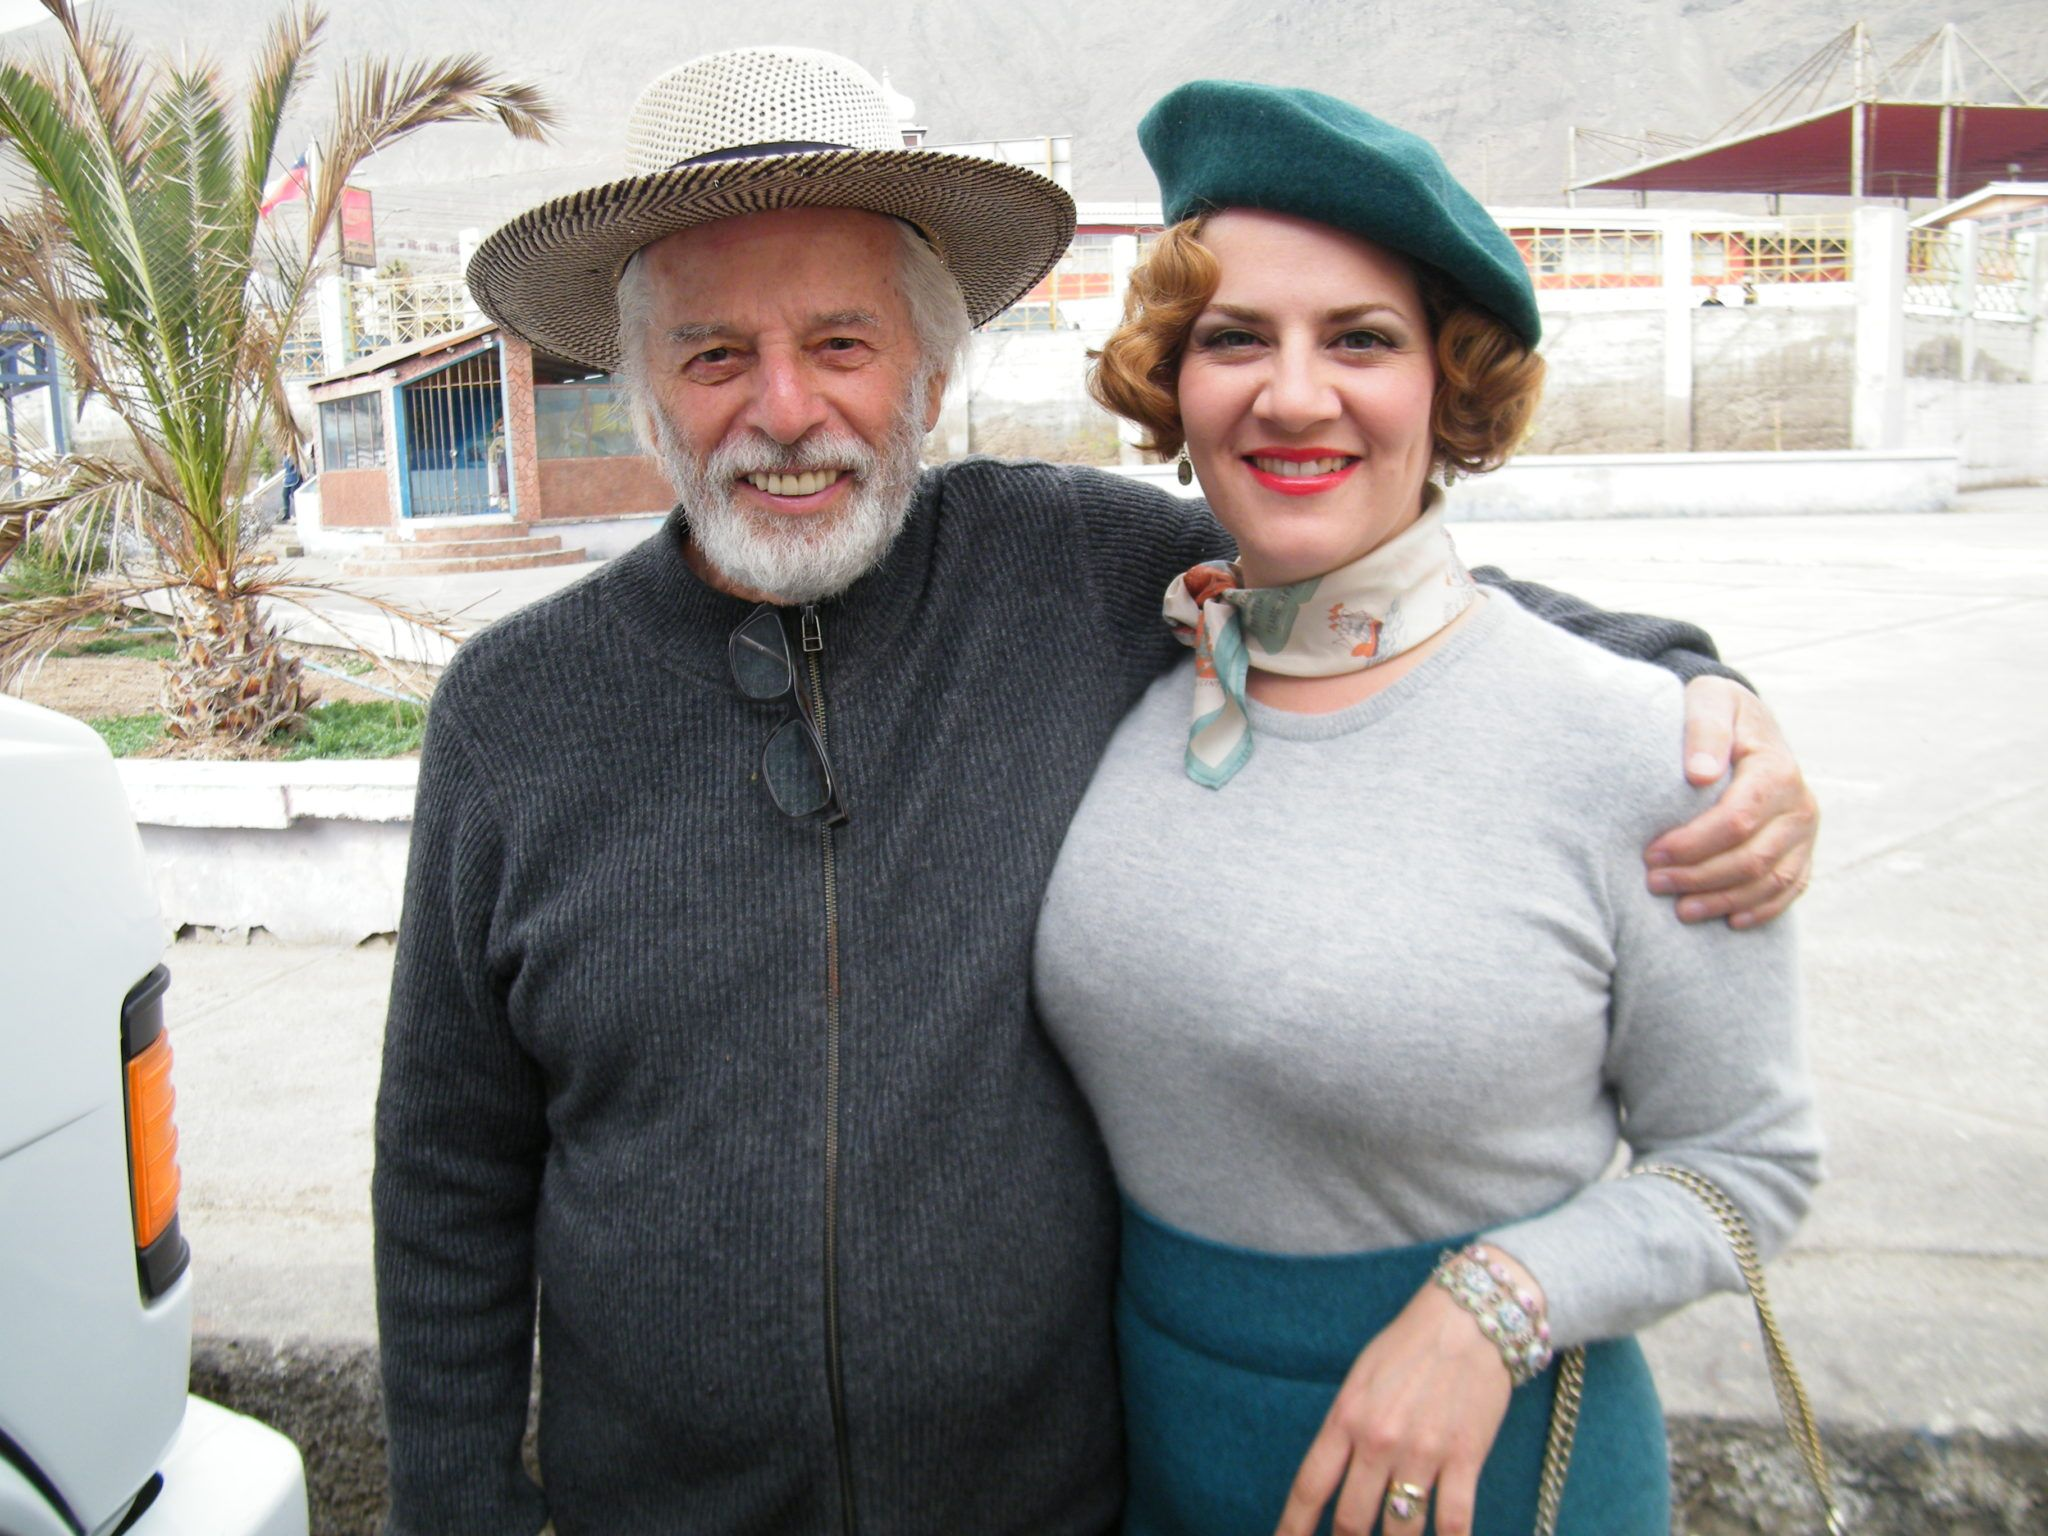 Alejandro Jodorowsky's special message on KICKSTARTER – Feb 15 2015